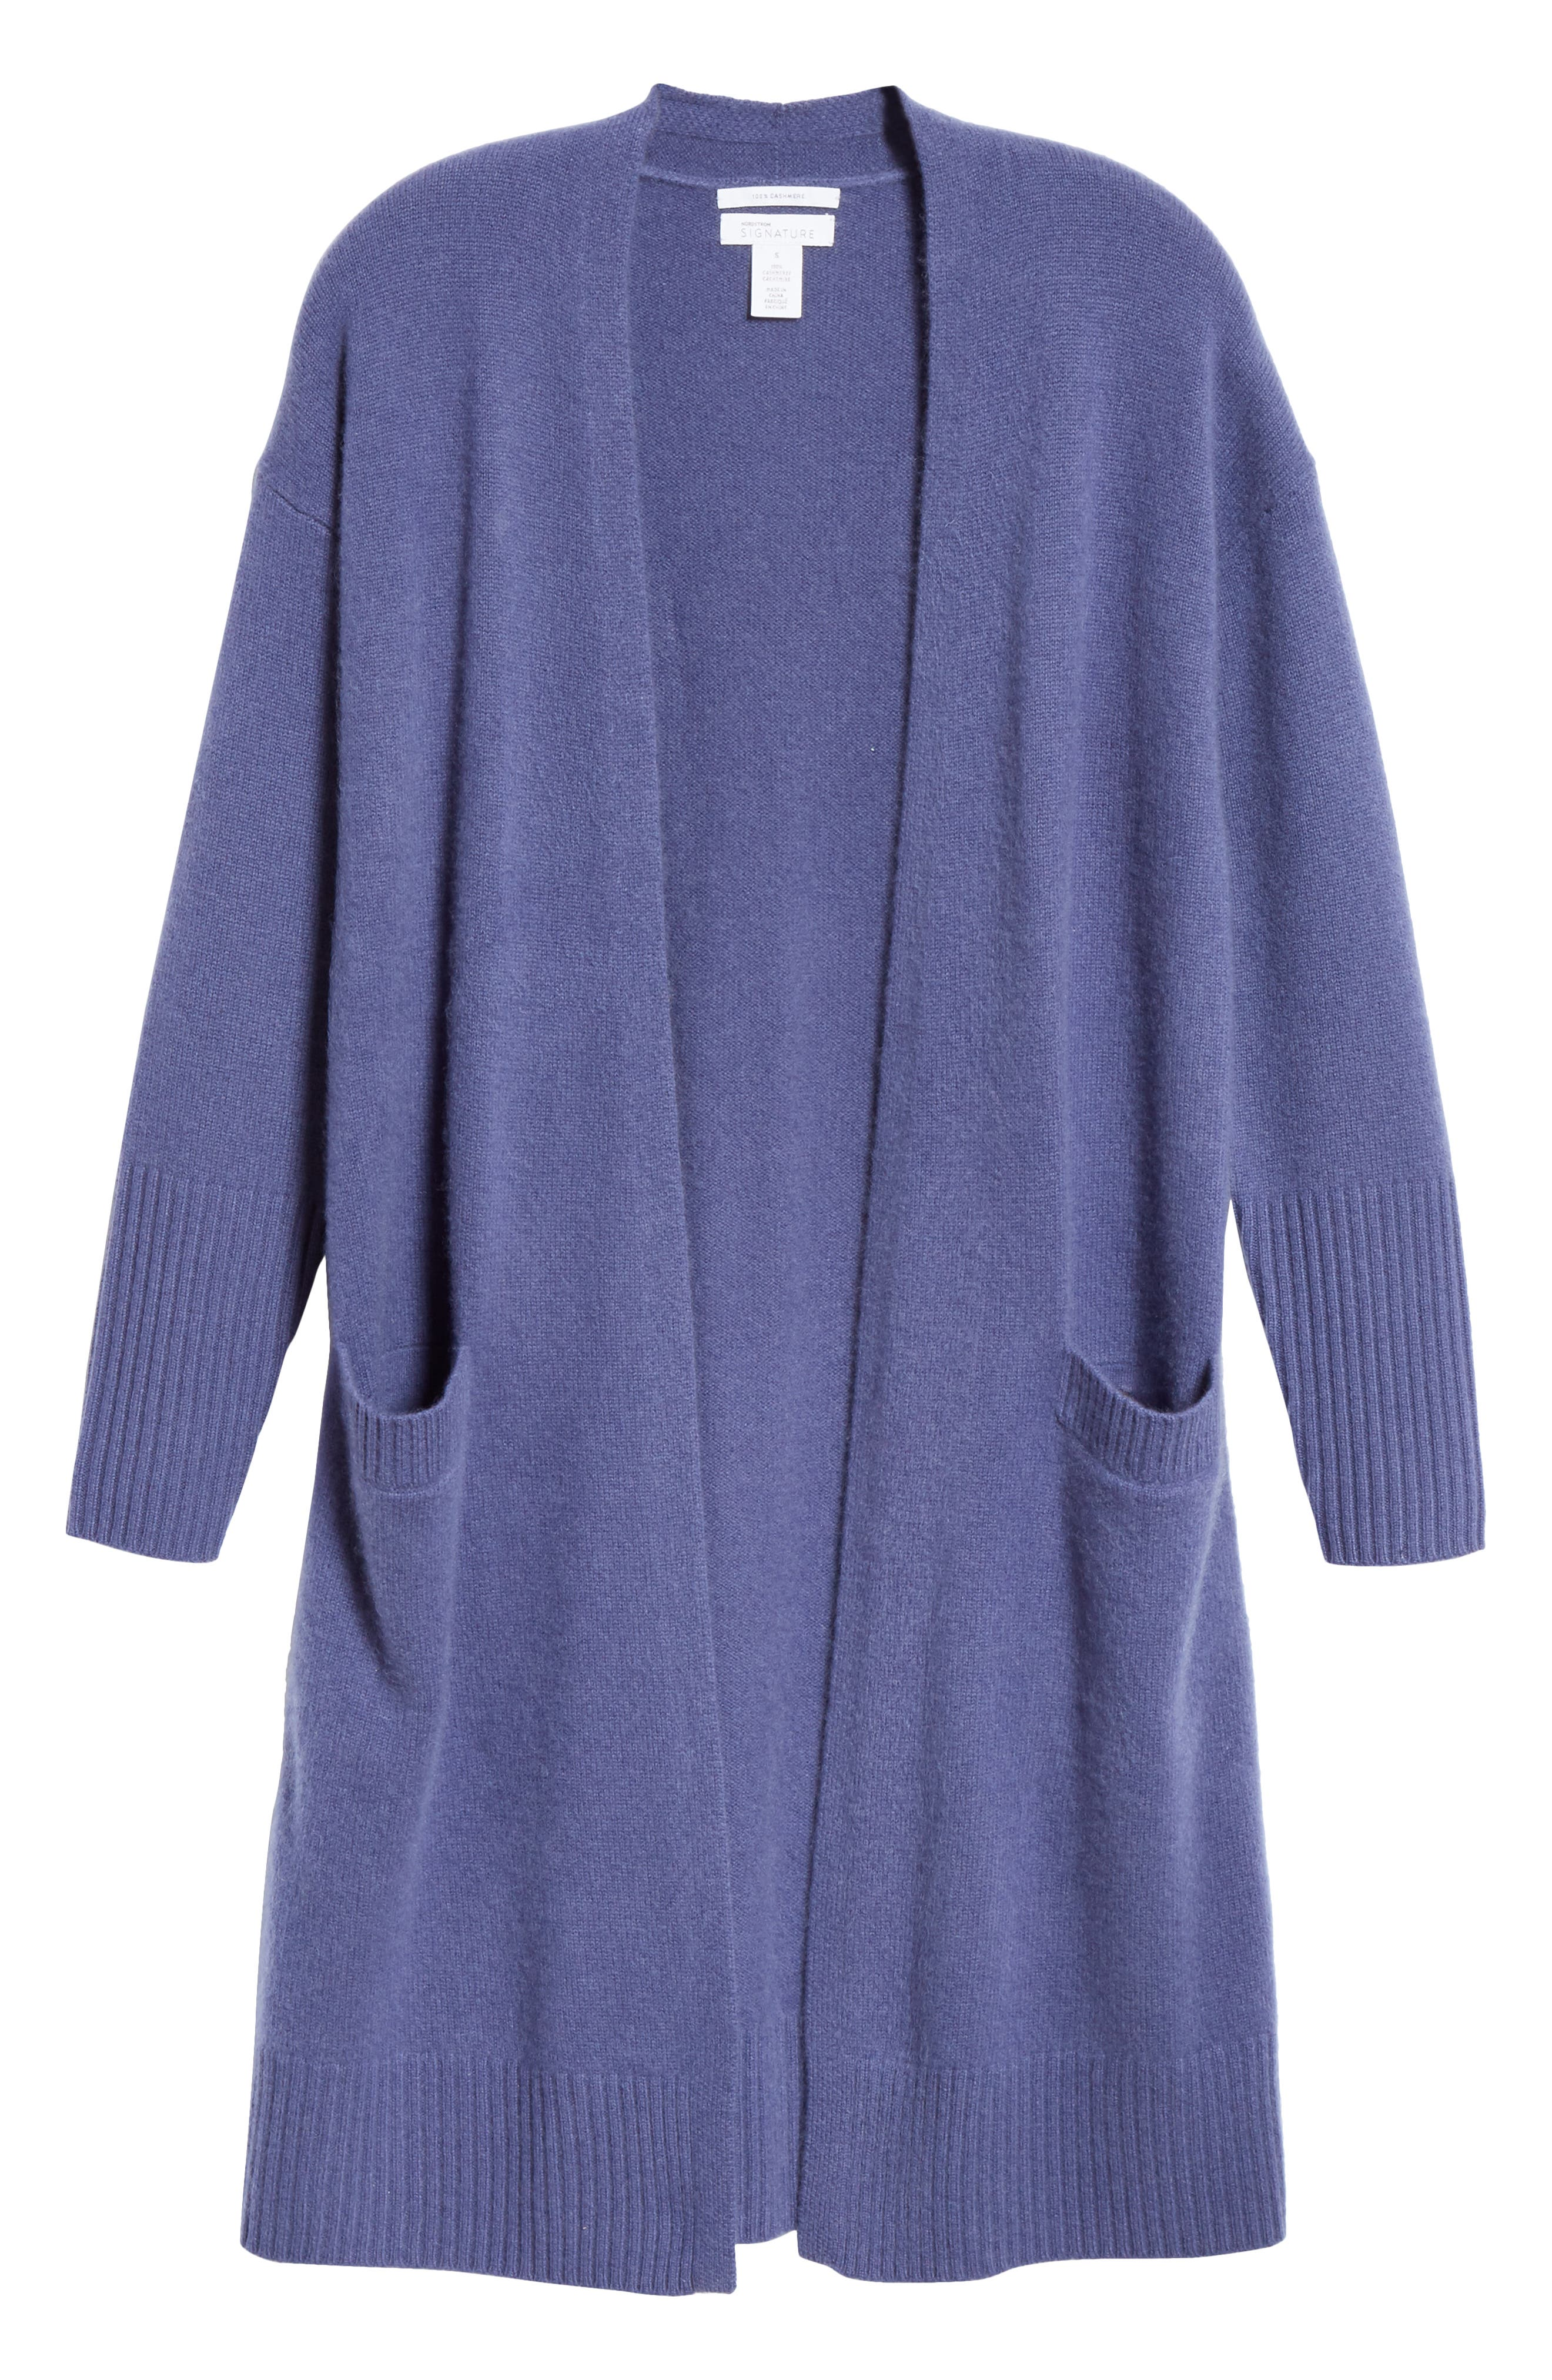 Boiled Cashmere Open Cardigan,                             Alternate thumbnail 6, color,                             BLUE MARLIN